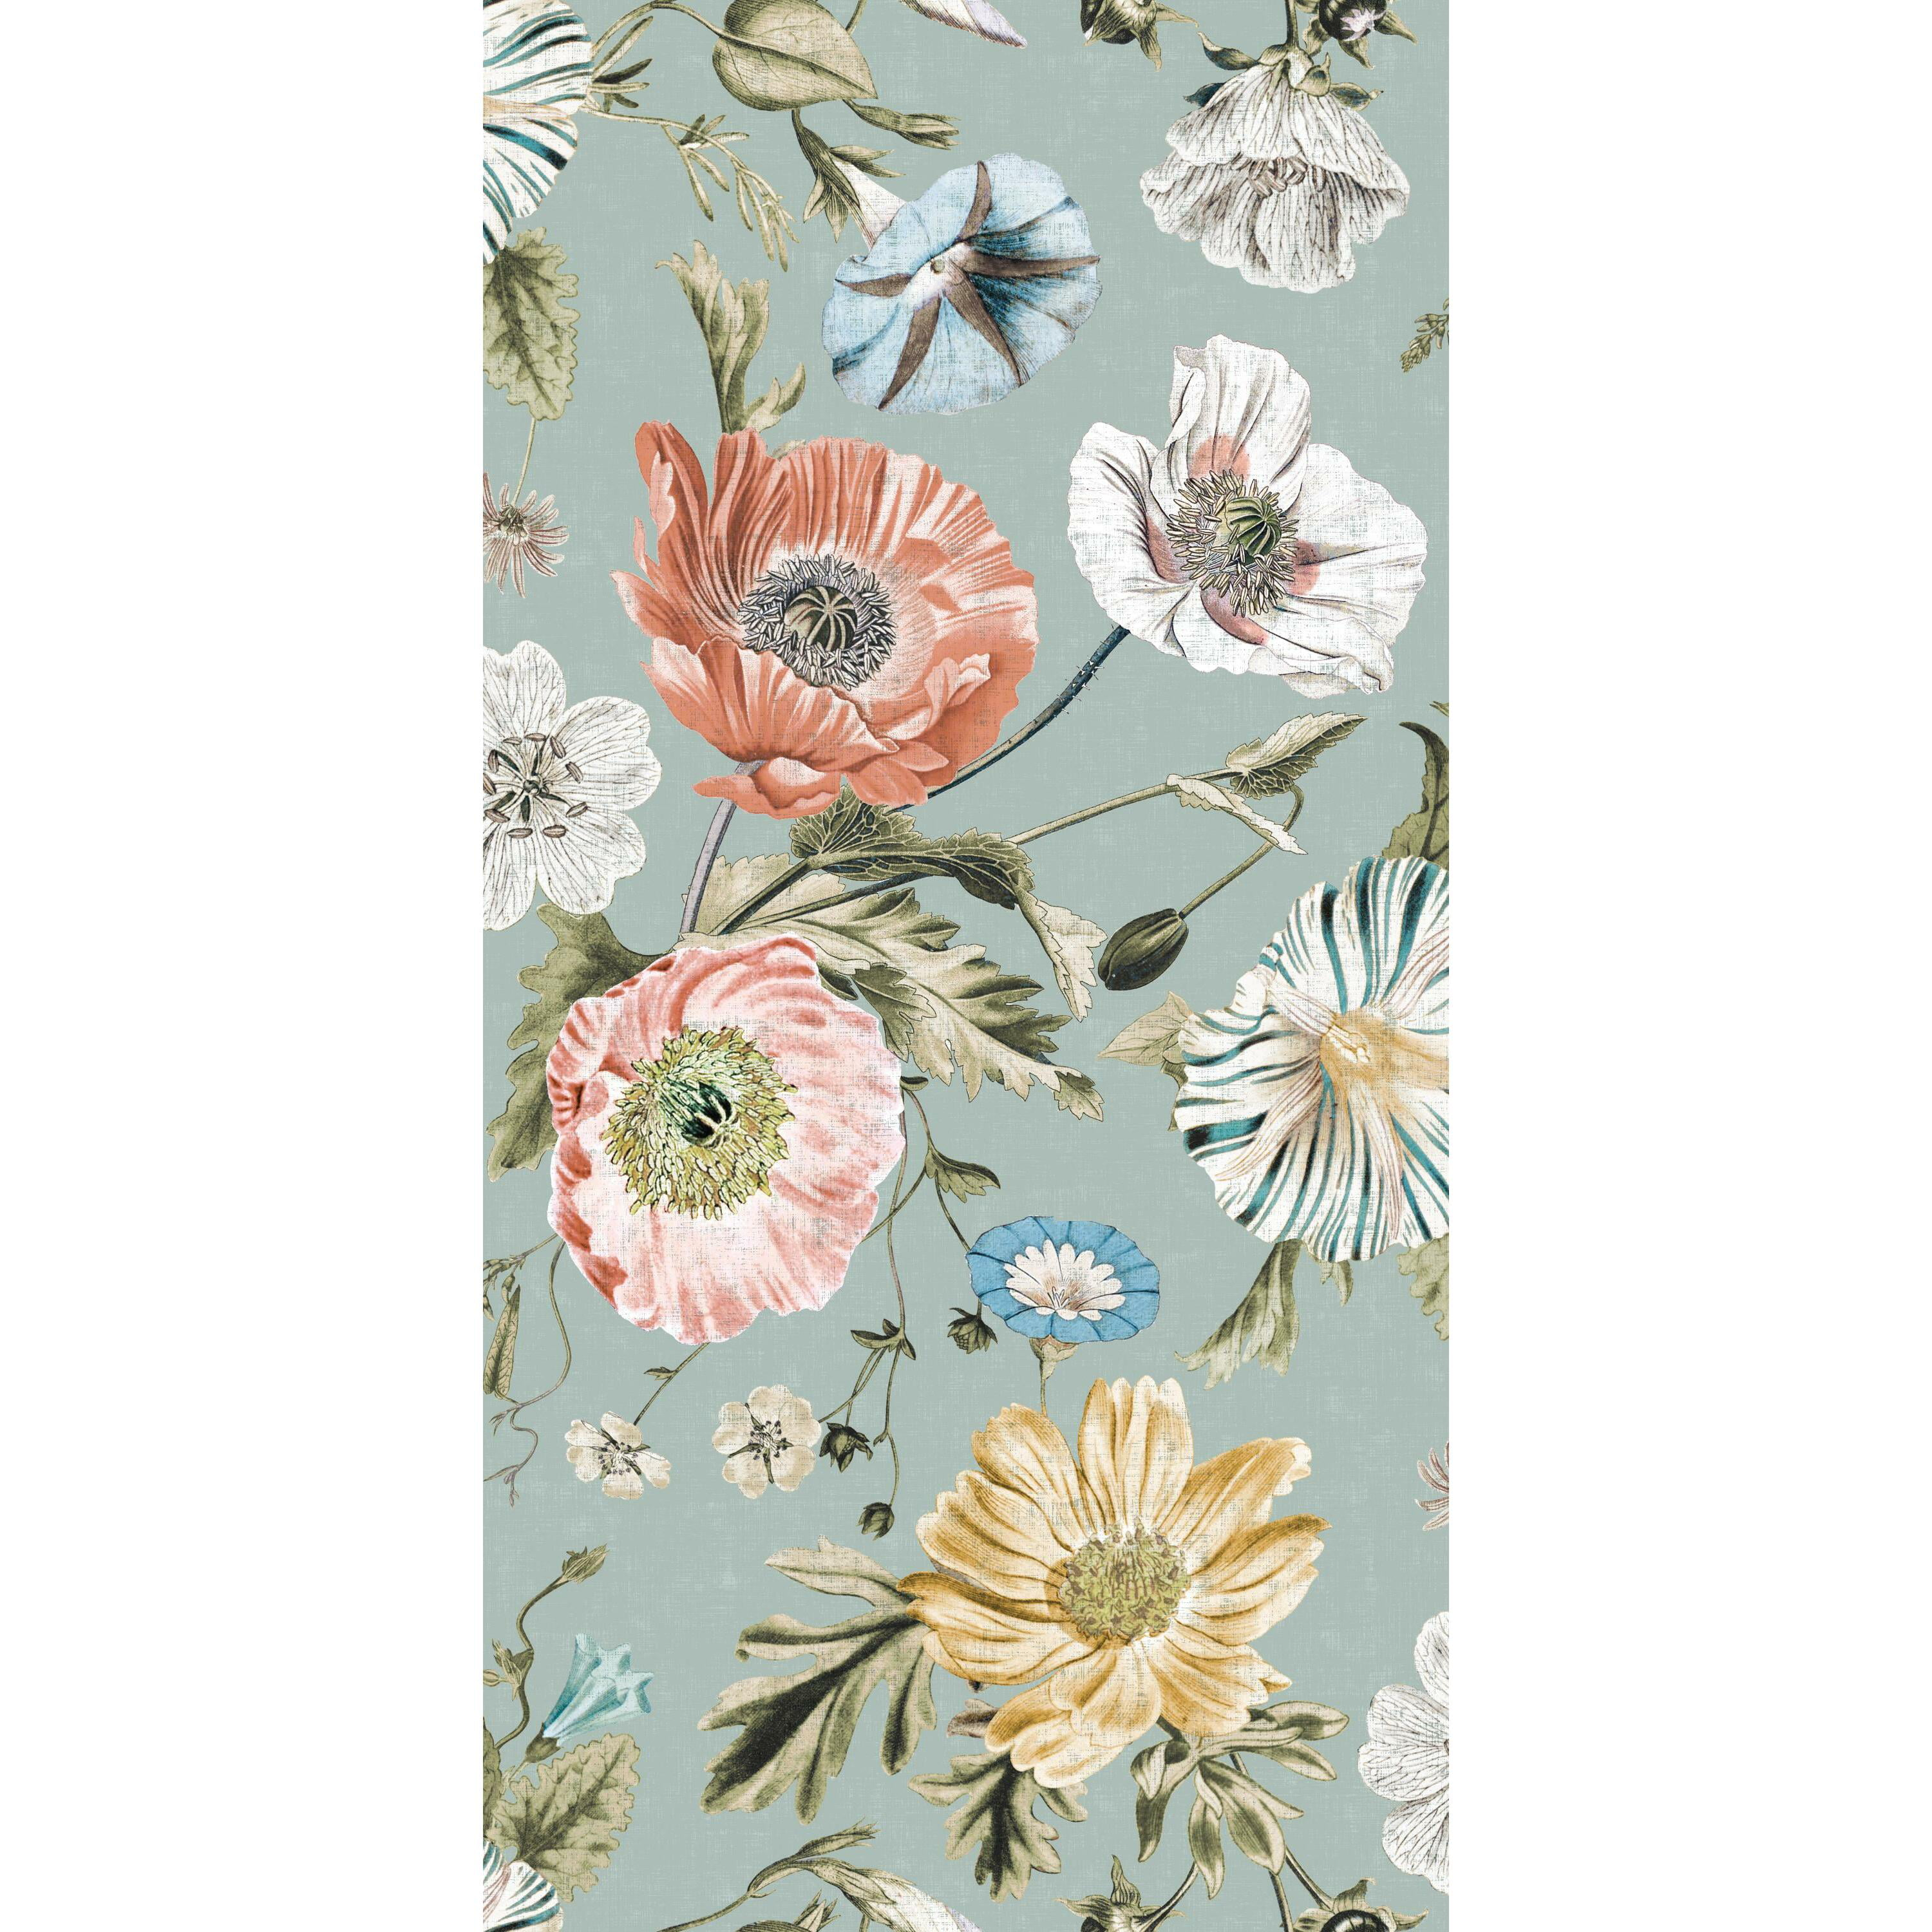 RoomMates Vintage Poppy Teal Blue Floral Peel and Stick ...